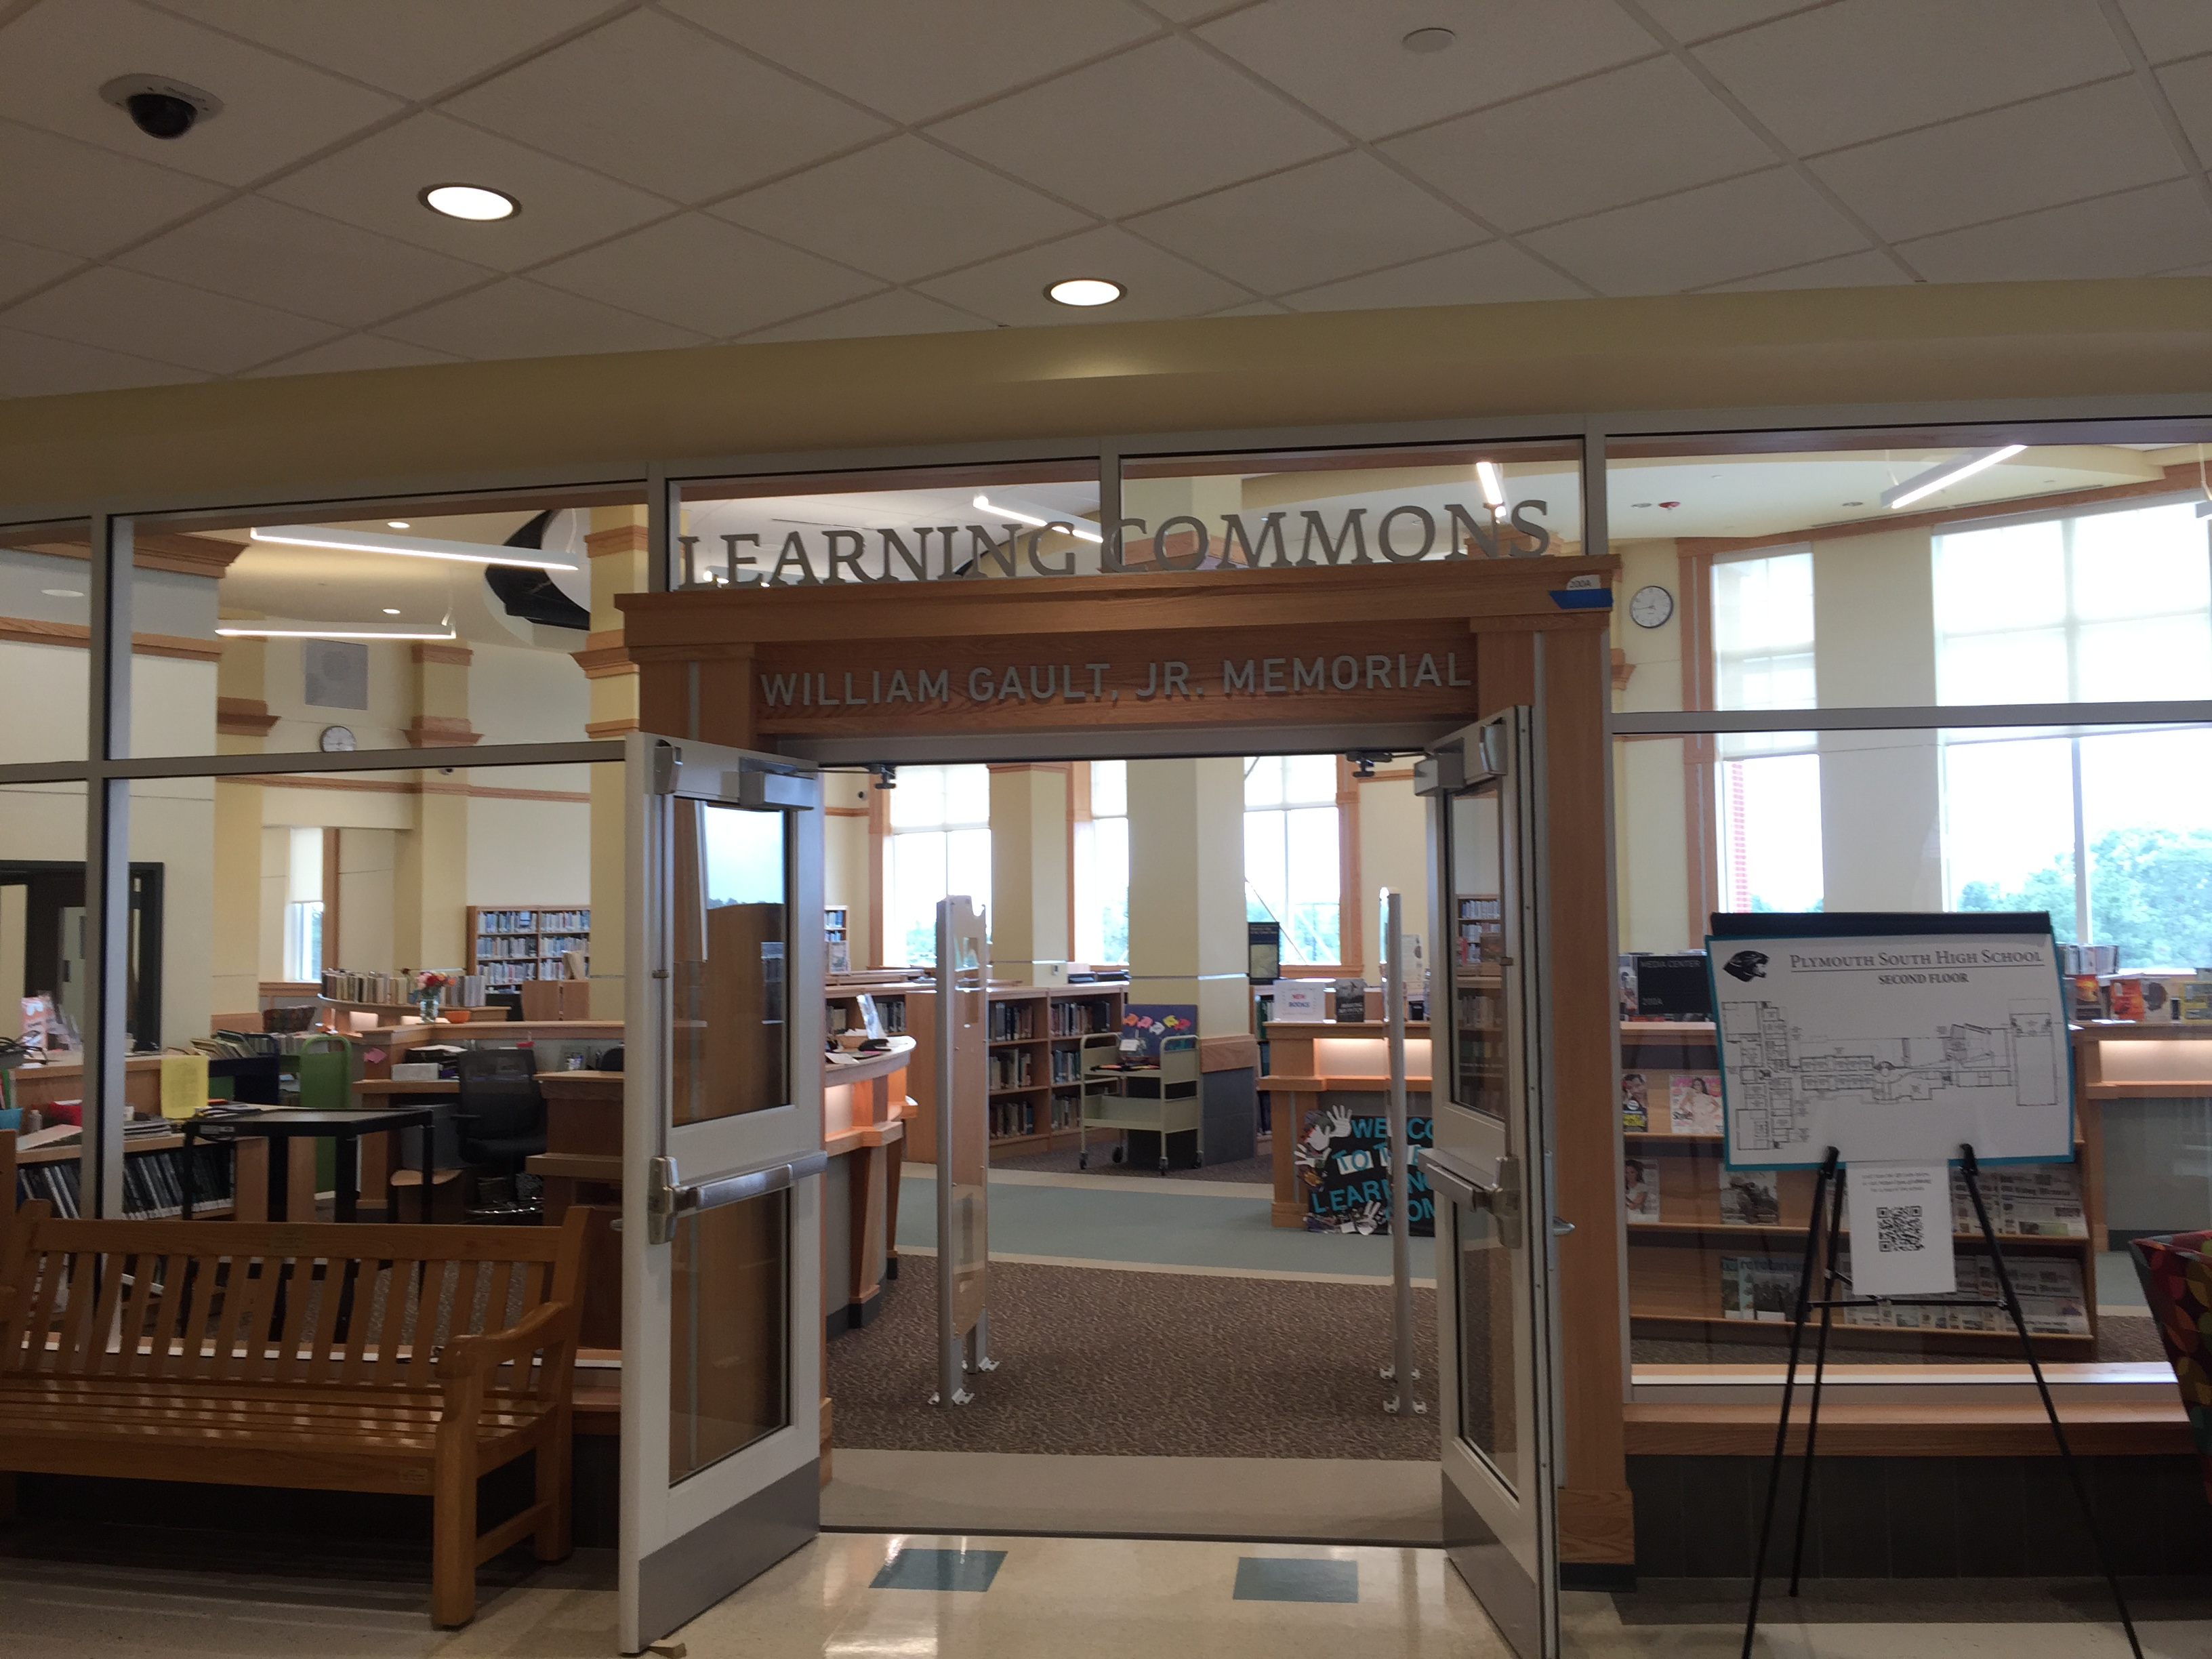 Learning Commons entrance